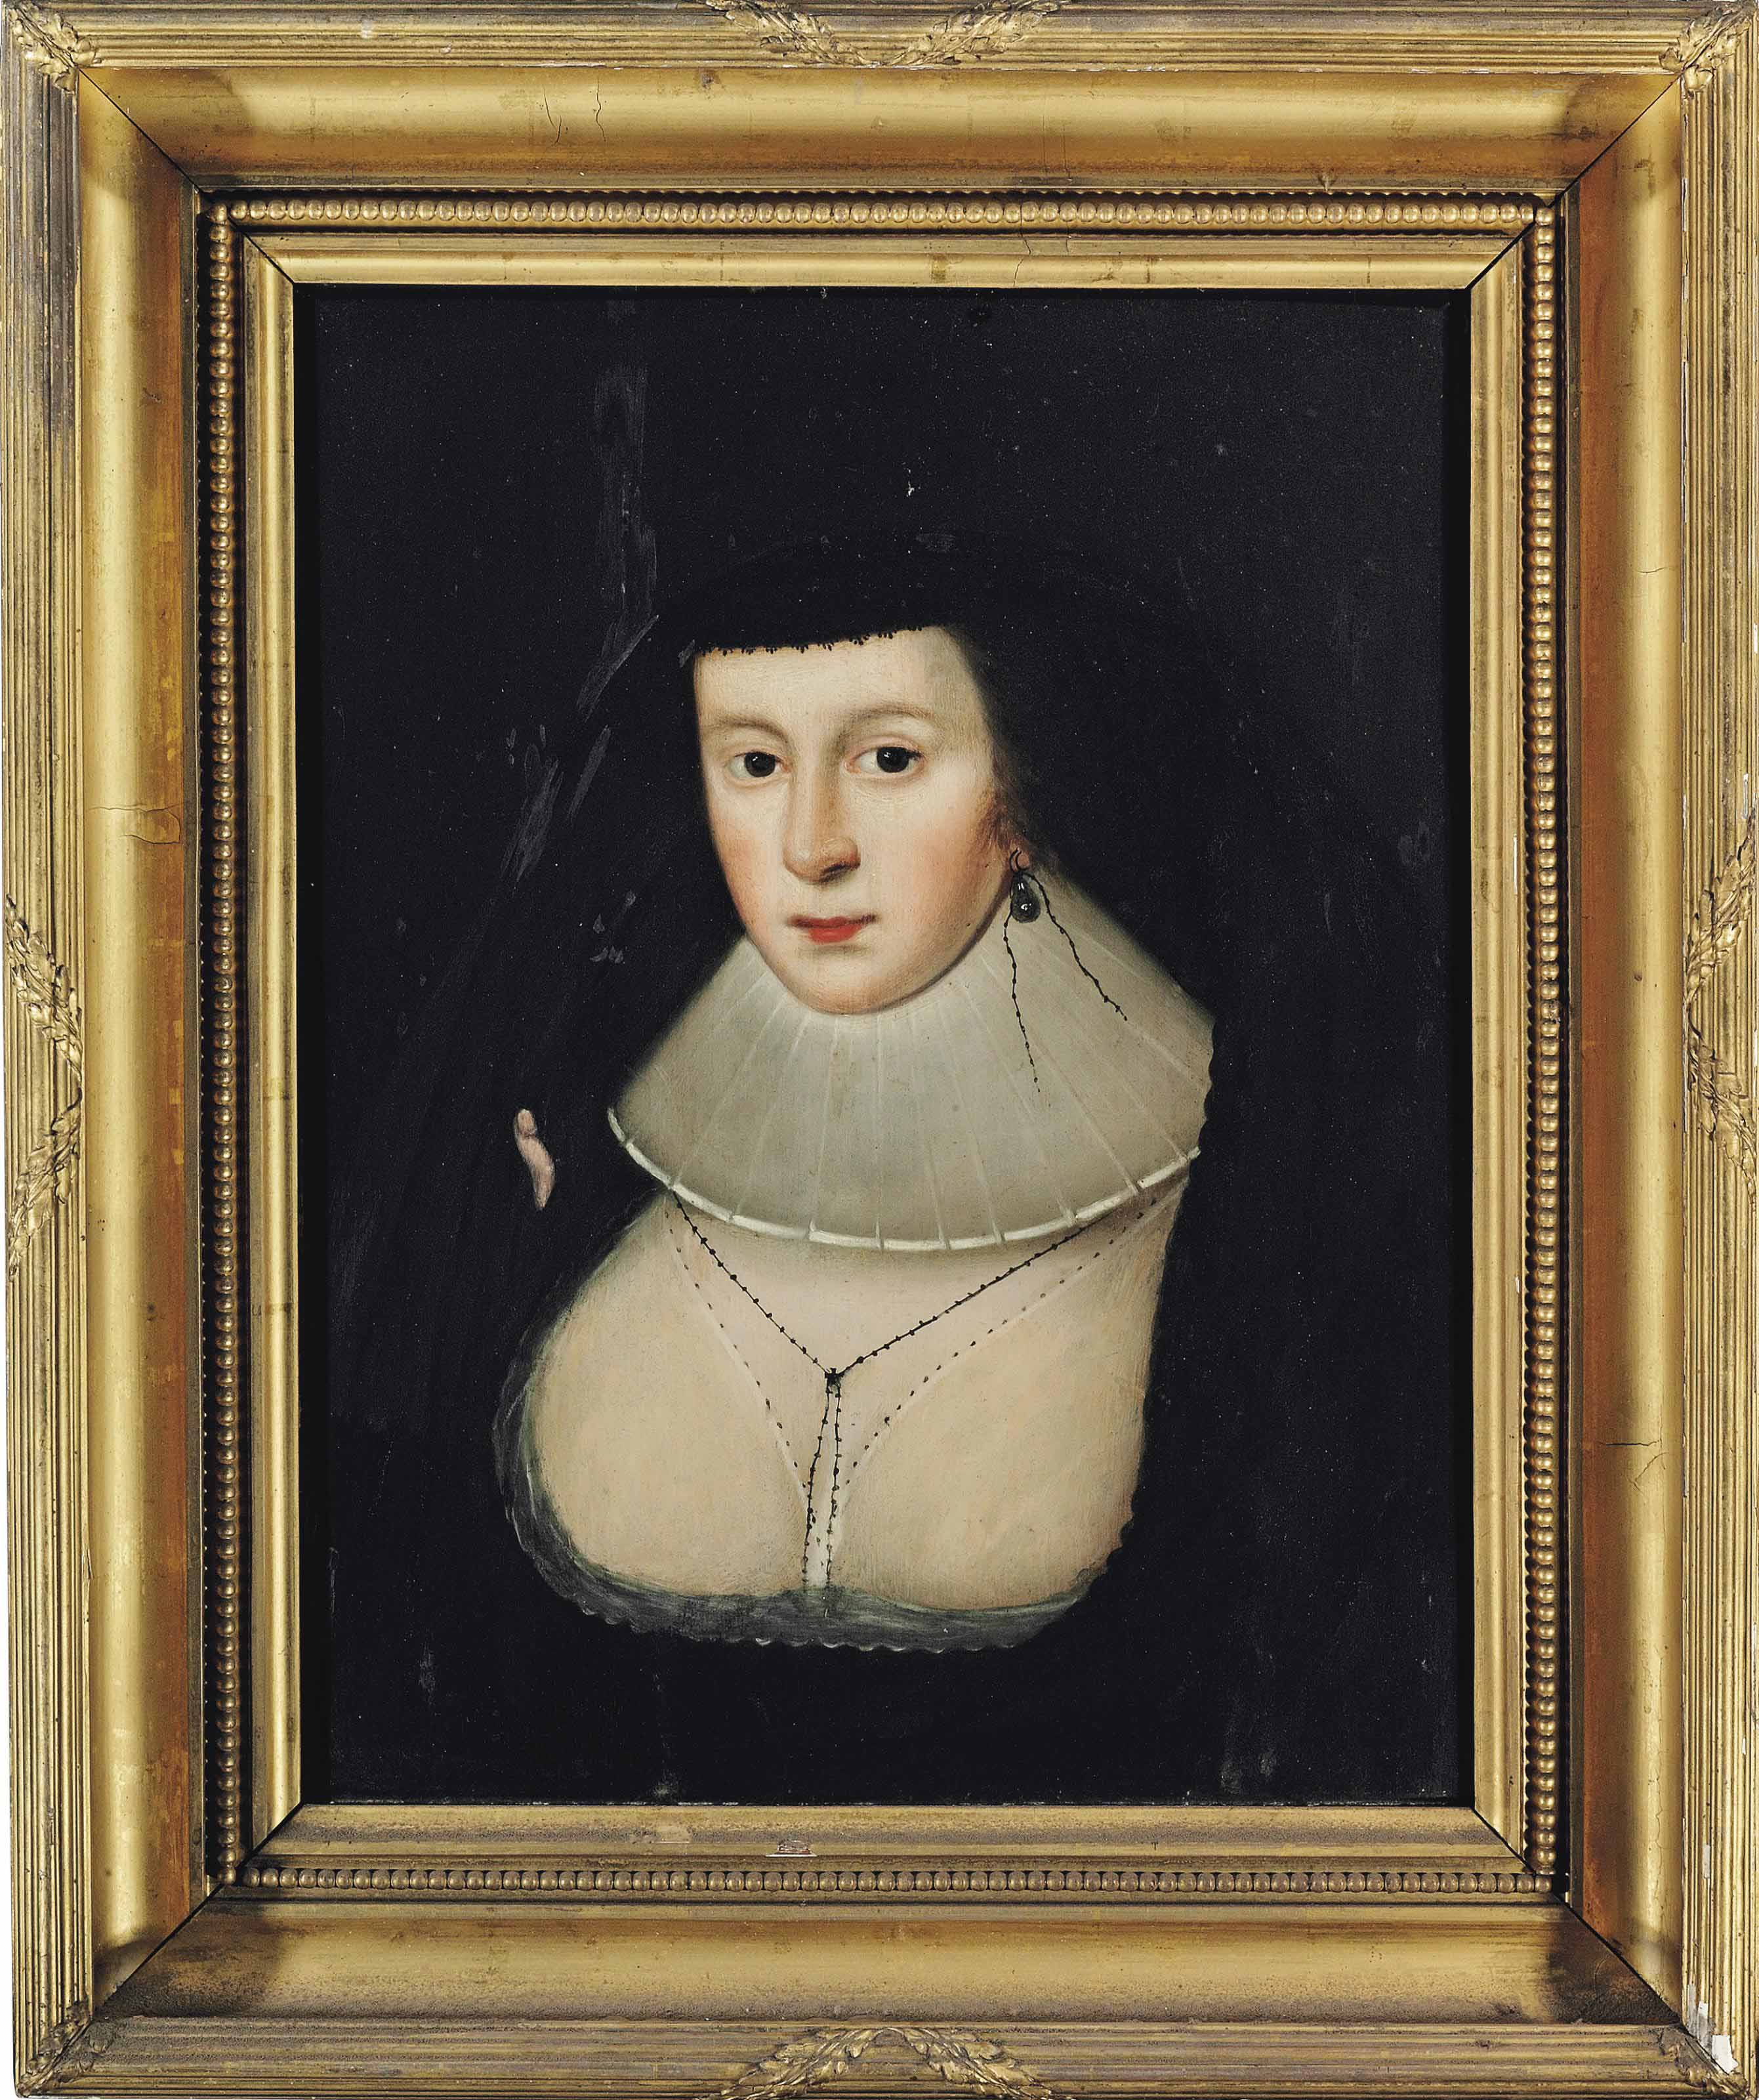 Portrait of a lady, traditionally identified as Mary, Queen of Scots (1542-1587), bust-length, in a black dress and white ruff, with a black veil and an earring